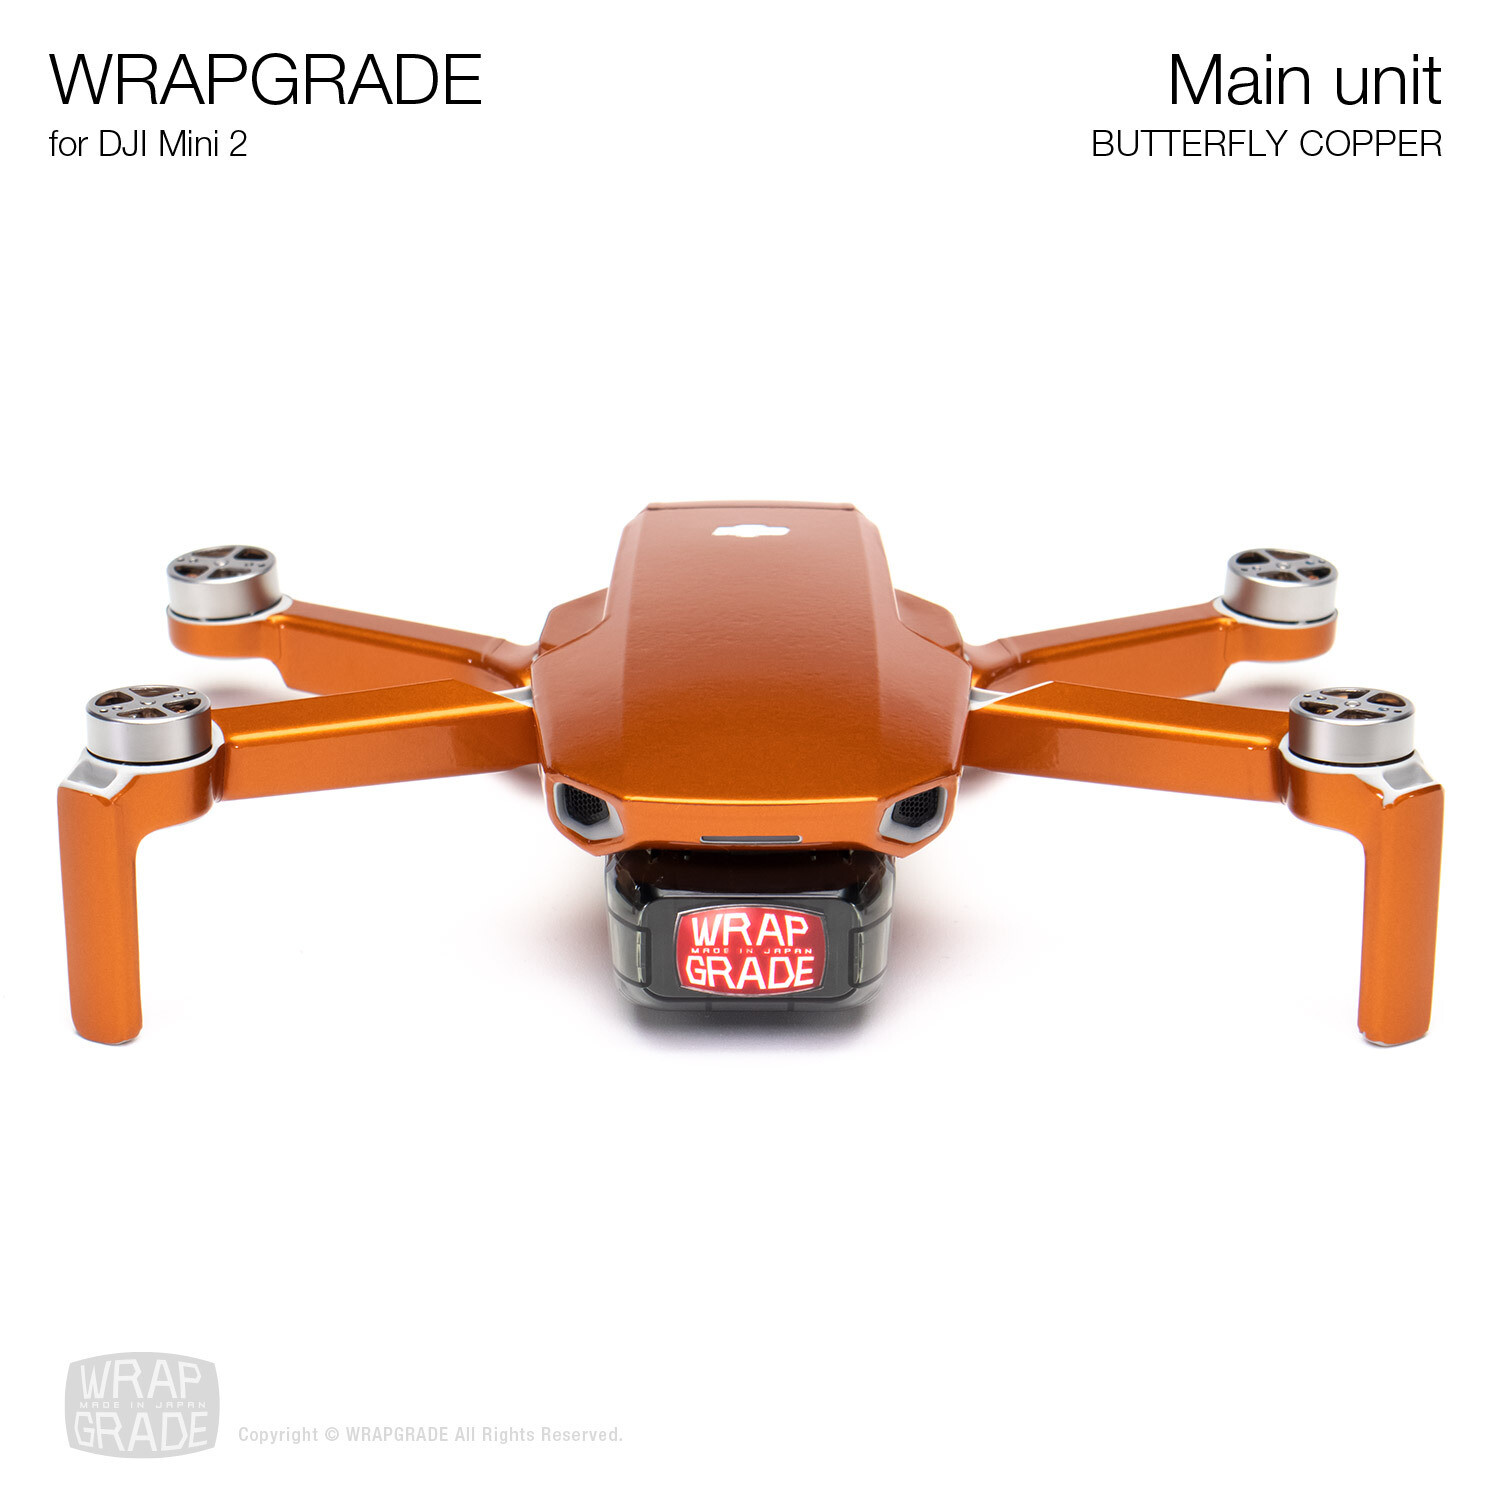 Wrapgrade Poly Skin for DJI Mini 2 | Main Unit (BUTTERFLY COPPER)